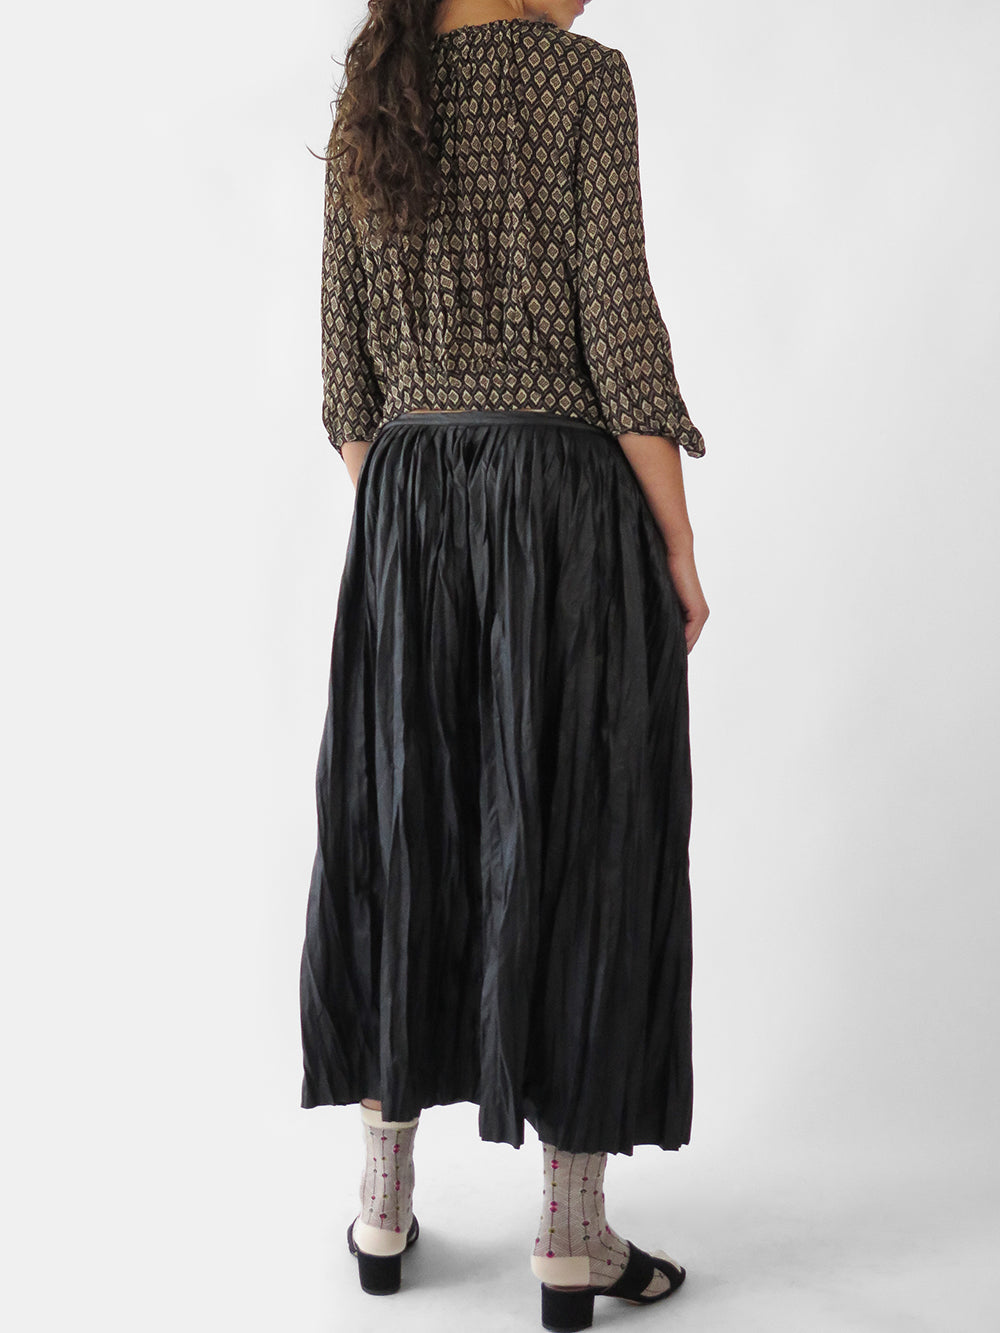 hazel brown double pleated skirt in black